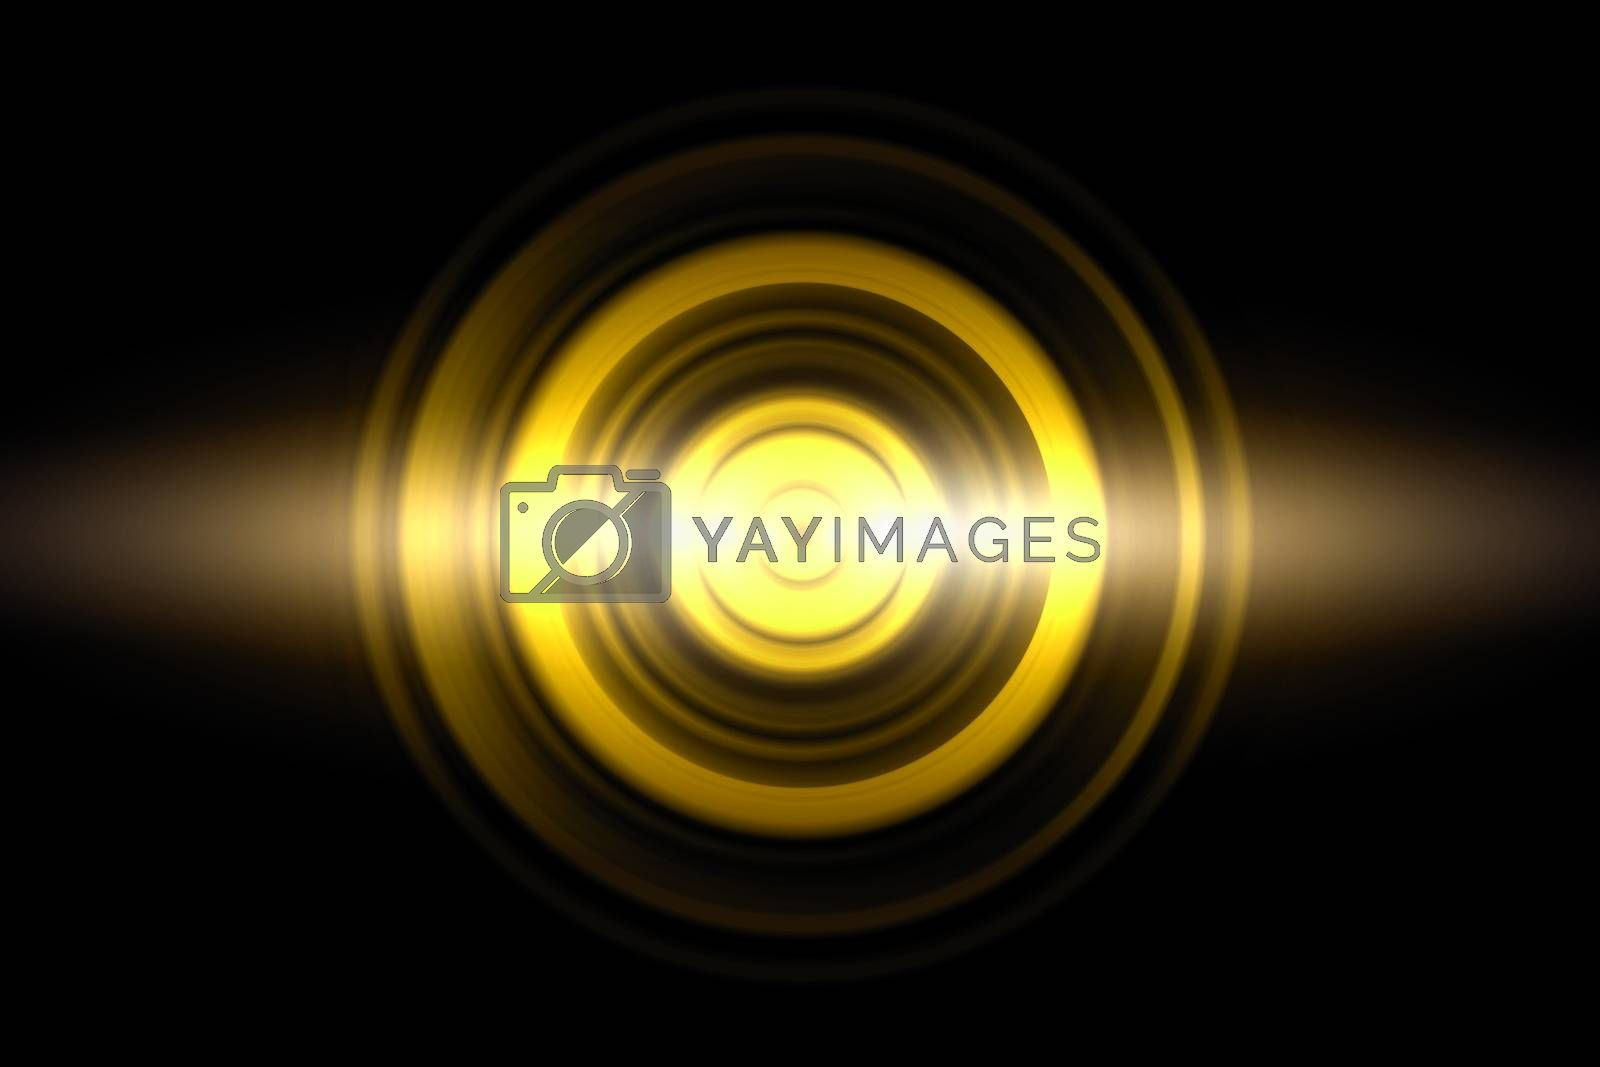 Sound waves oscillating golden light with circle spin, abstract background by mouu007